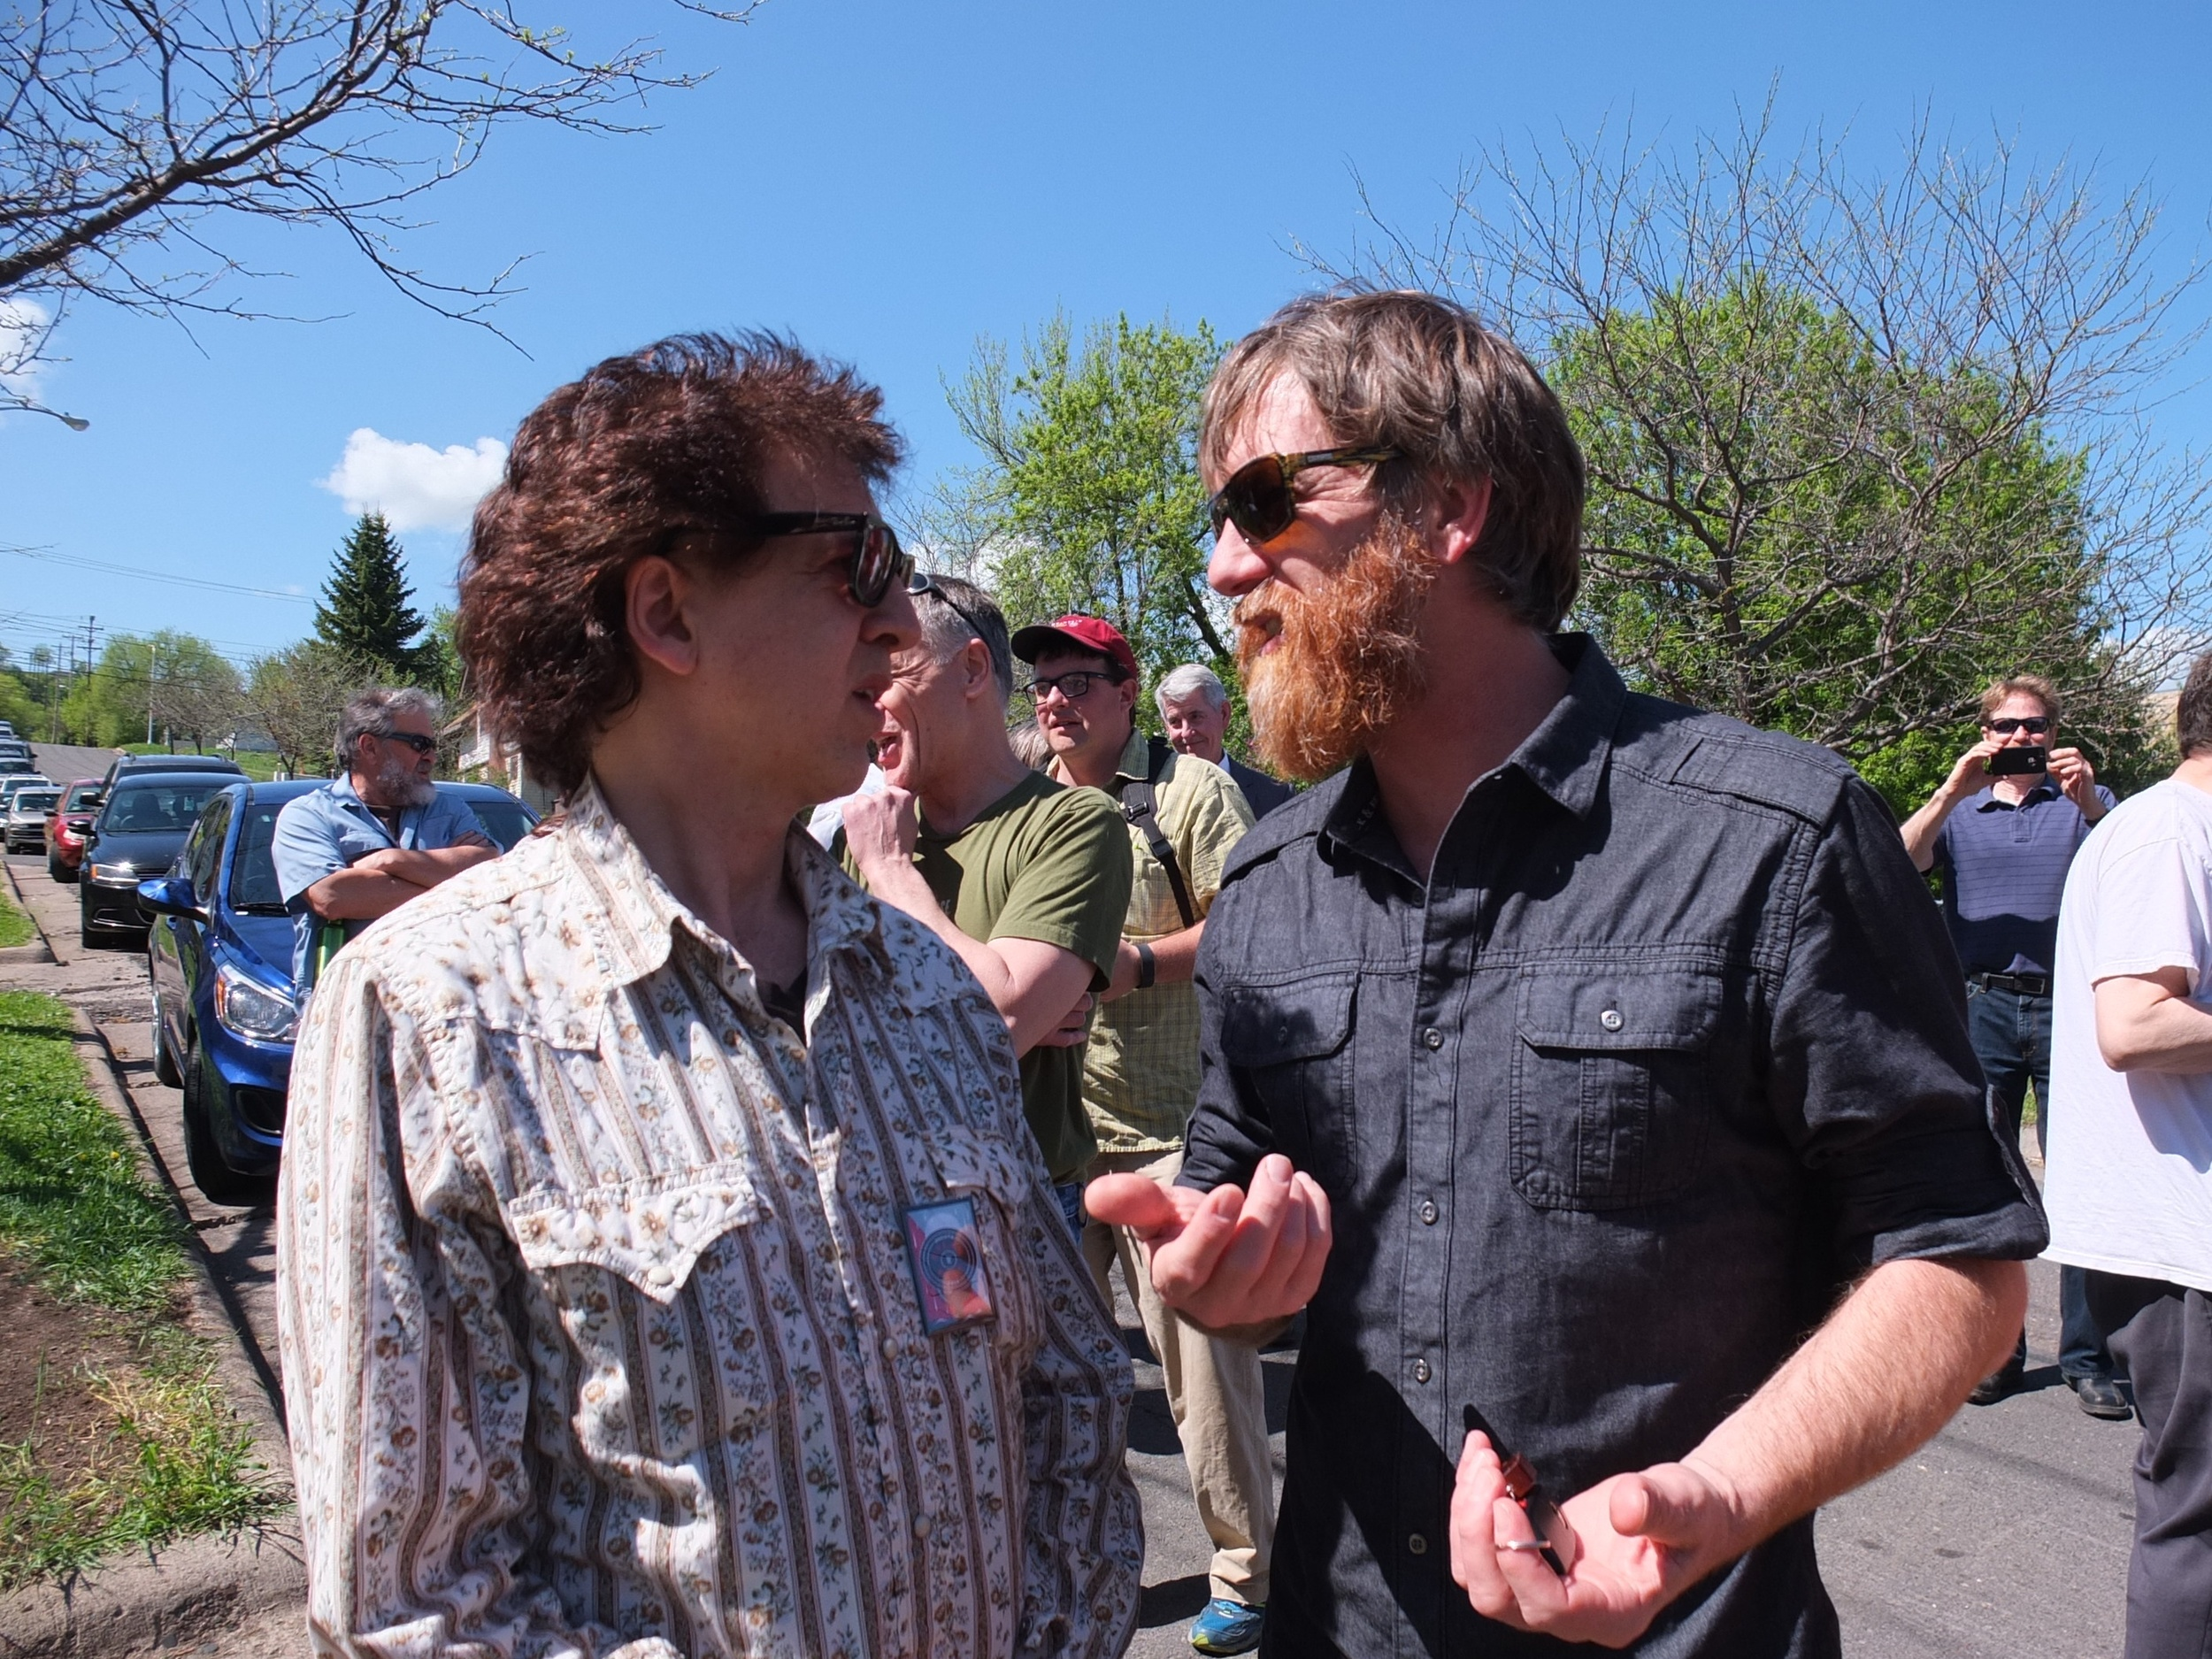 Bob Dylan's First Home Marker Unveiling Ceremony / Magic Marc and Brad Nelson / 519 North 3rd Avenue East / Duluth, Minnesota / May 24th, 2016 / Photo by Kathleen